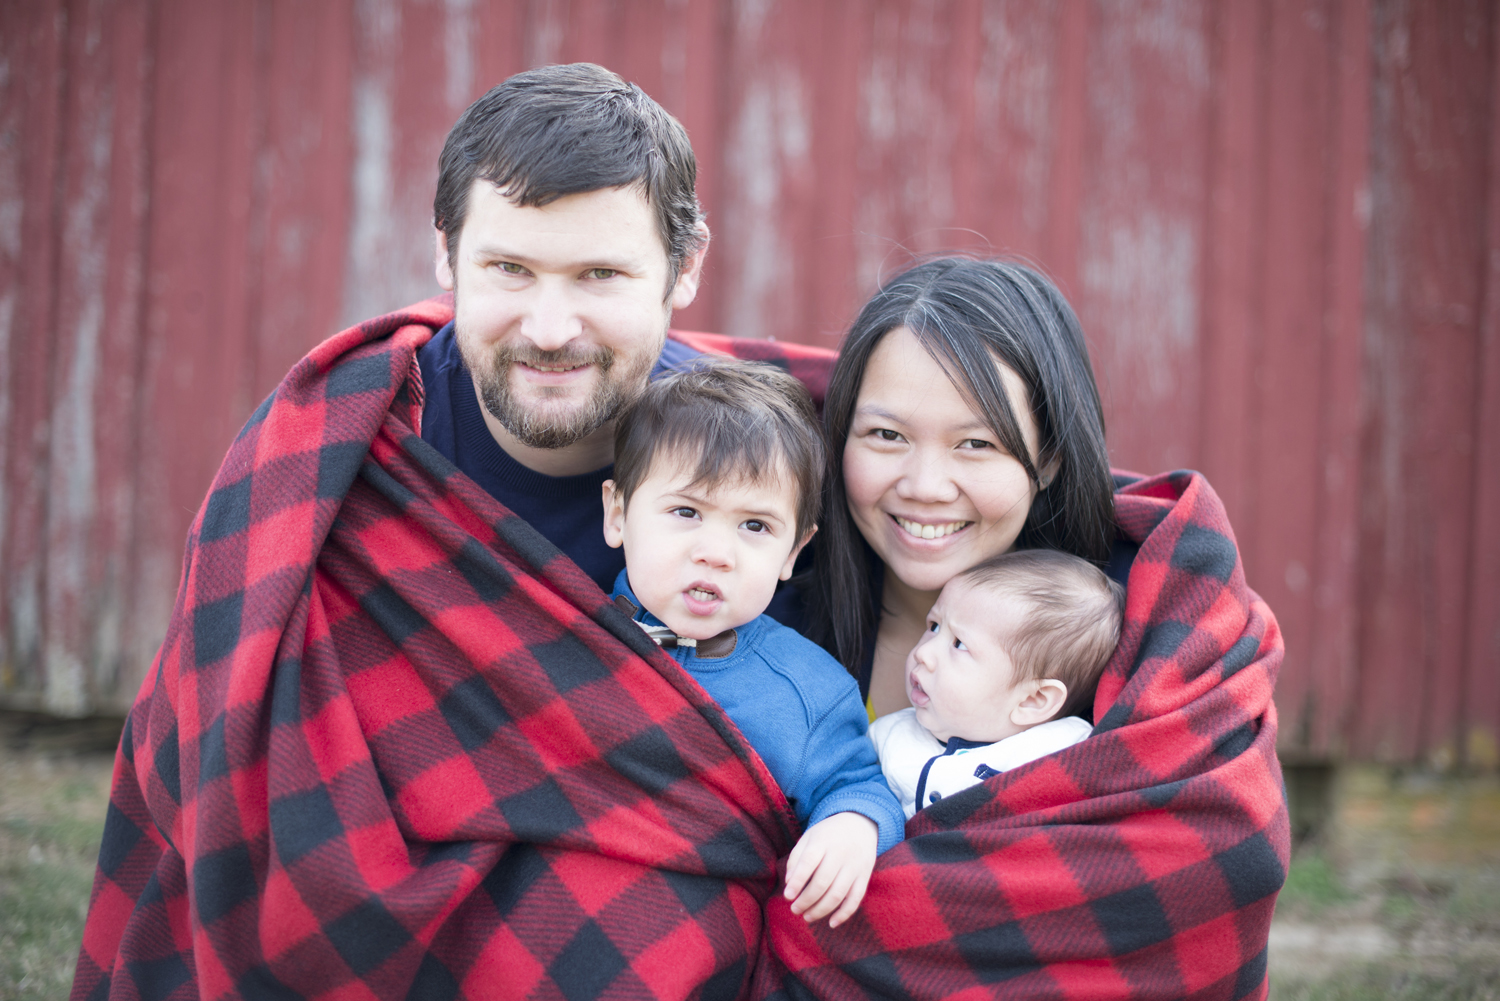 Winter family portrait session with plaid blanket